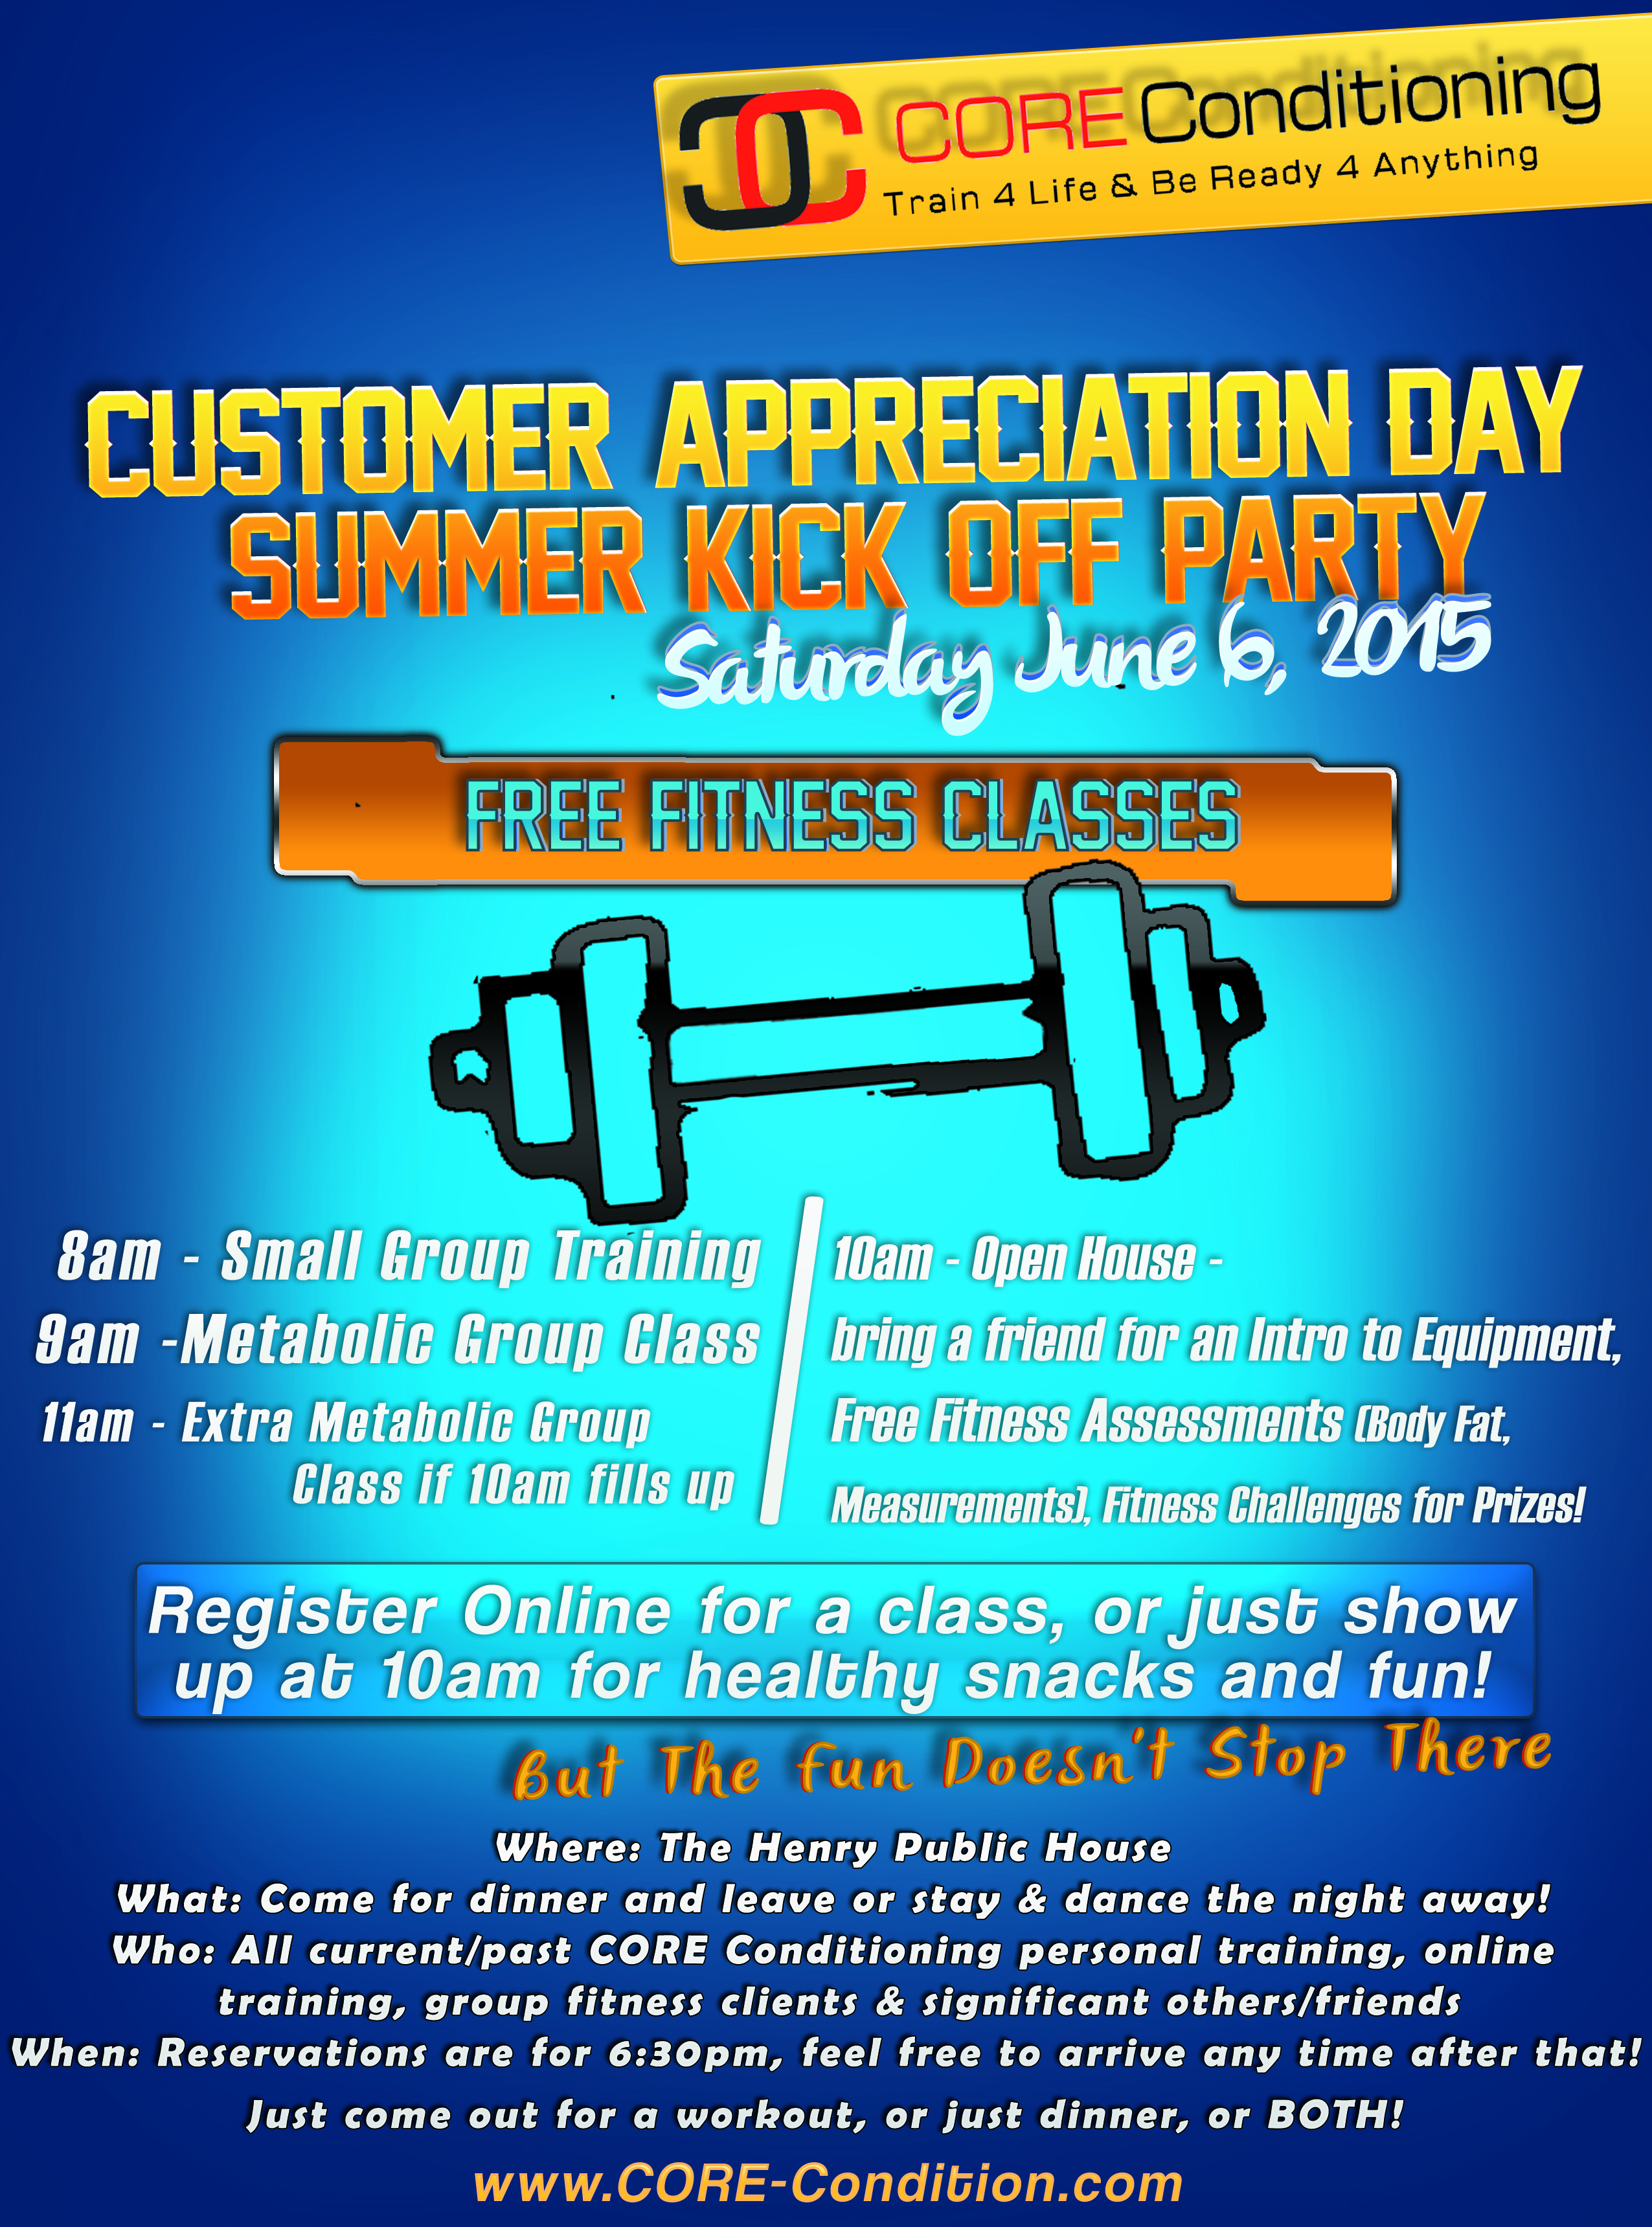 Free Fitness Classes This Saturday!